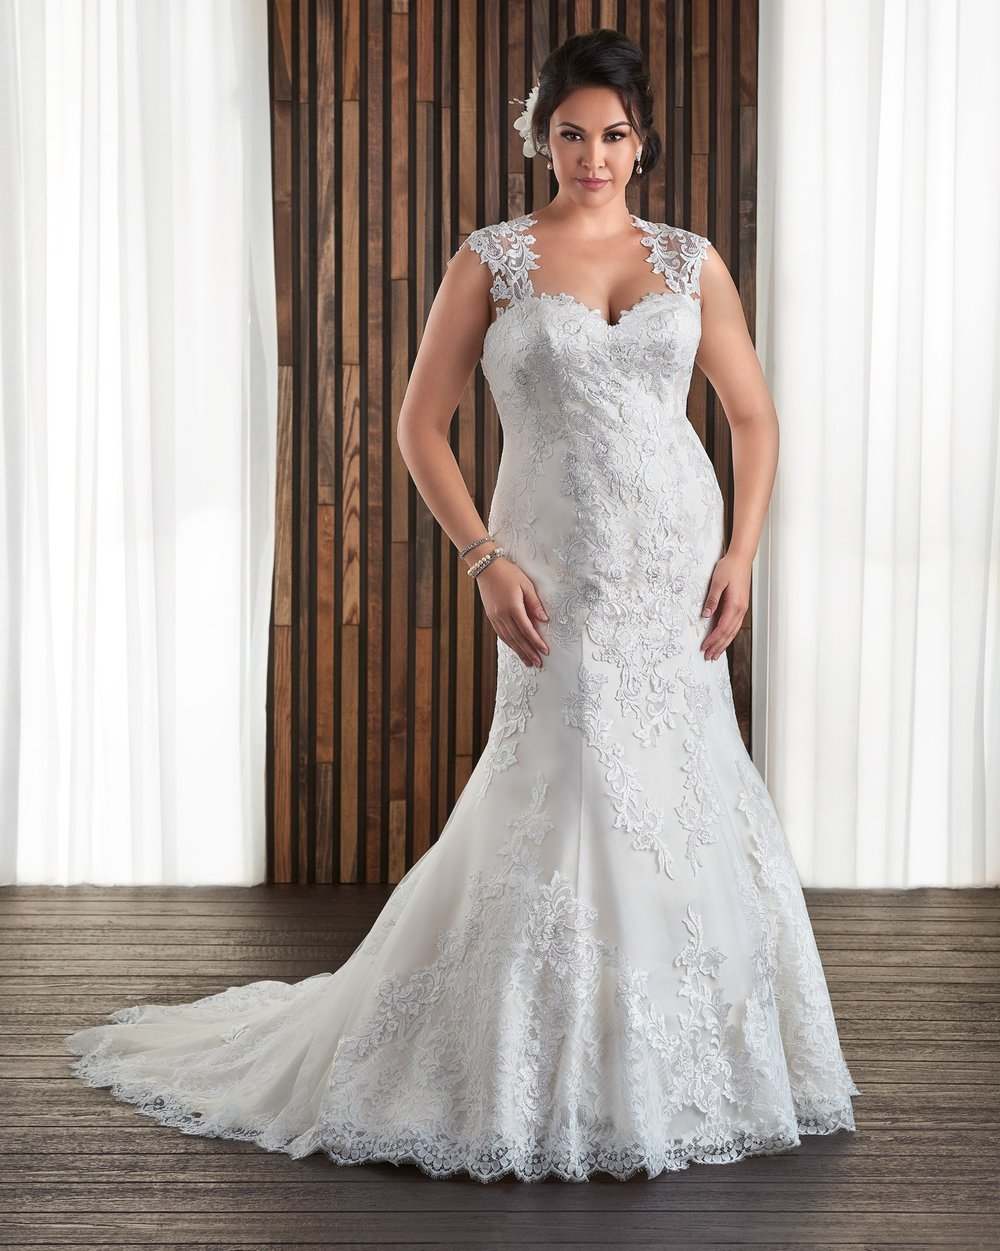 BonnyBridal-BridesbyYoung-PlusSizeWeddingDress-1712.jpg